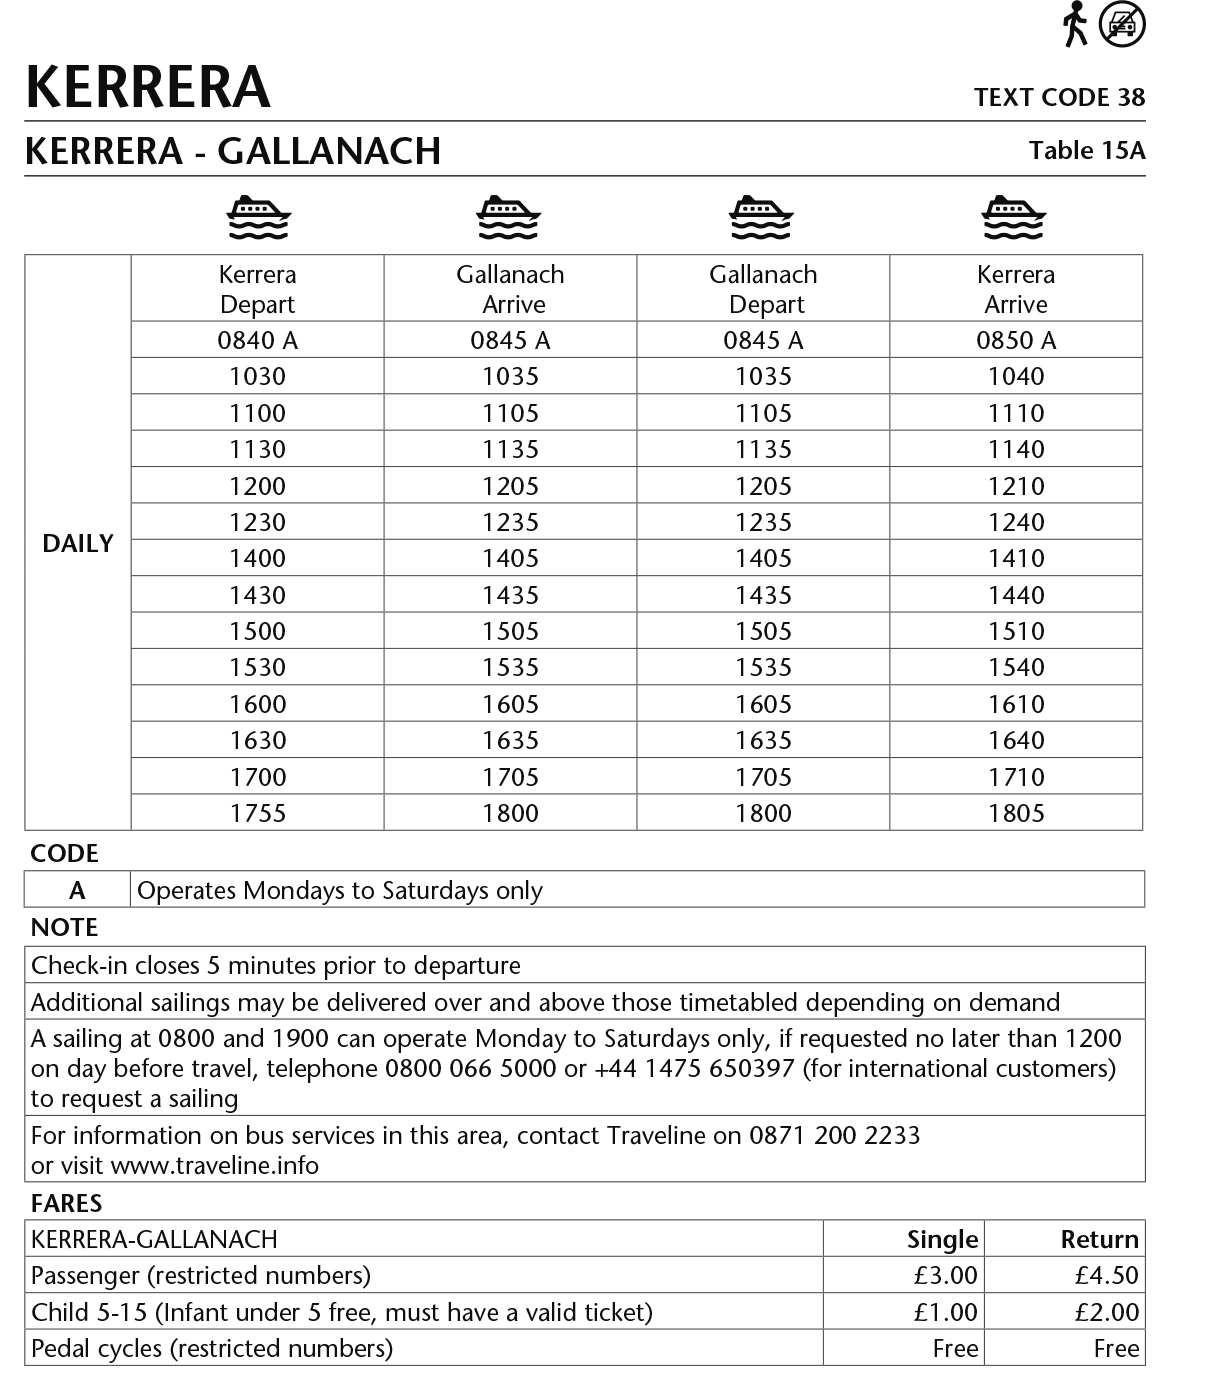 Table 15A Gallanach - Kerrera Summer 2017 This image is currently not accessible to screen readers. Please phone 0800 066 5000 for timetable details.